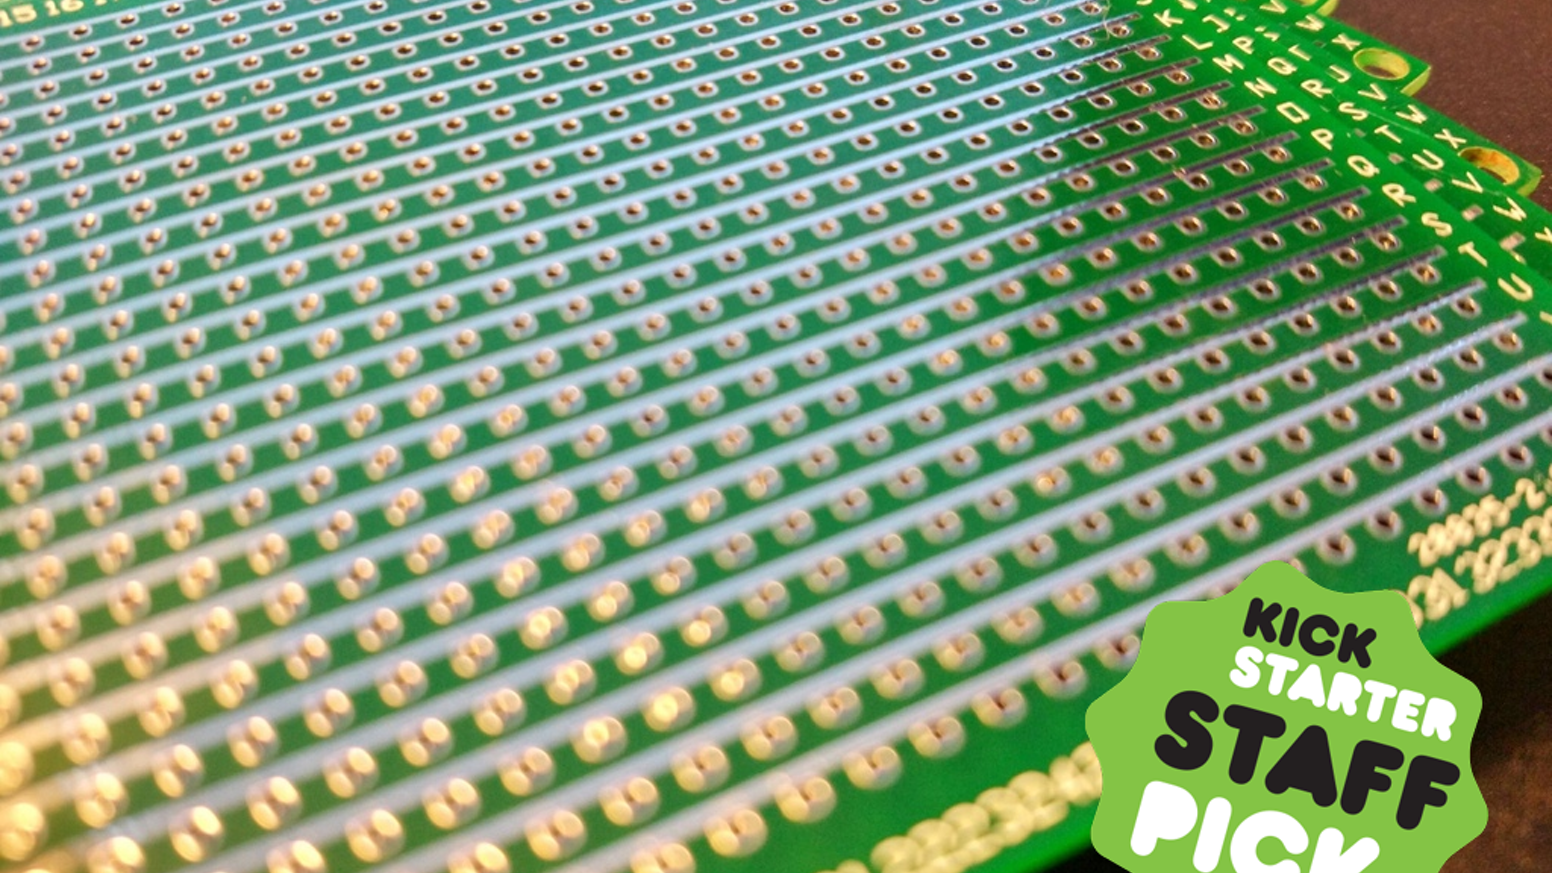 Perf+ is a revolutionary prototyping board designed for ease of use and flexibility.